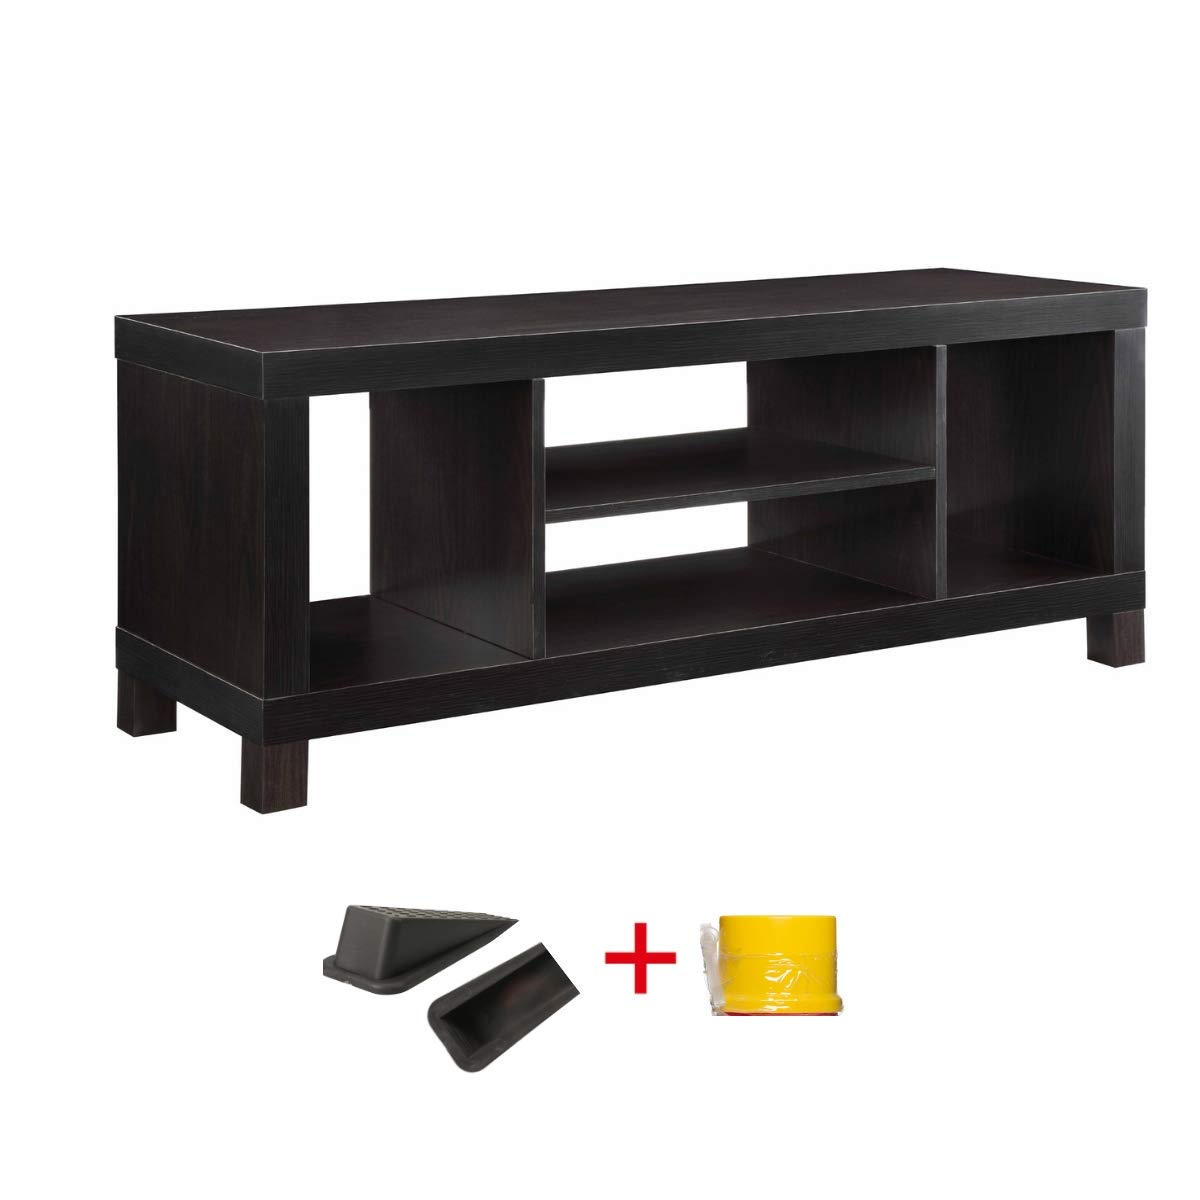 Generic Cross Mill TV Stand Black, 15.75 x 45.38 x 20.88 Inches